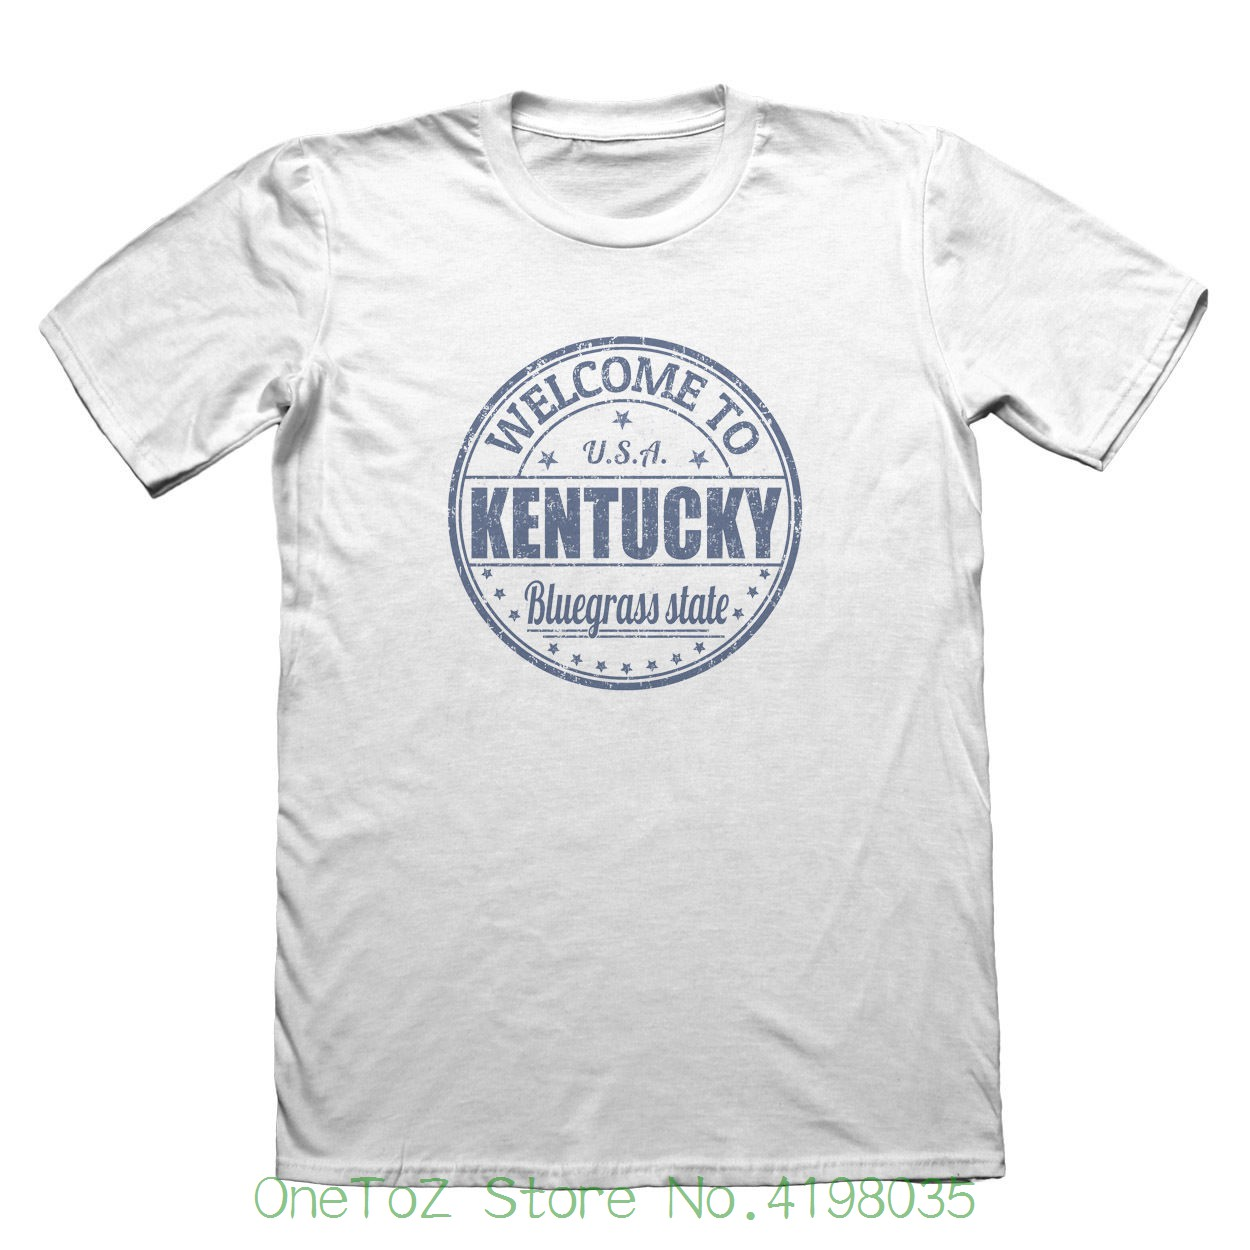 Kentucky Usa America T-shirt - Mens Fathers Day Christmas Gift #6124 2018 Summer T-shirts For Men